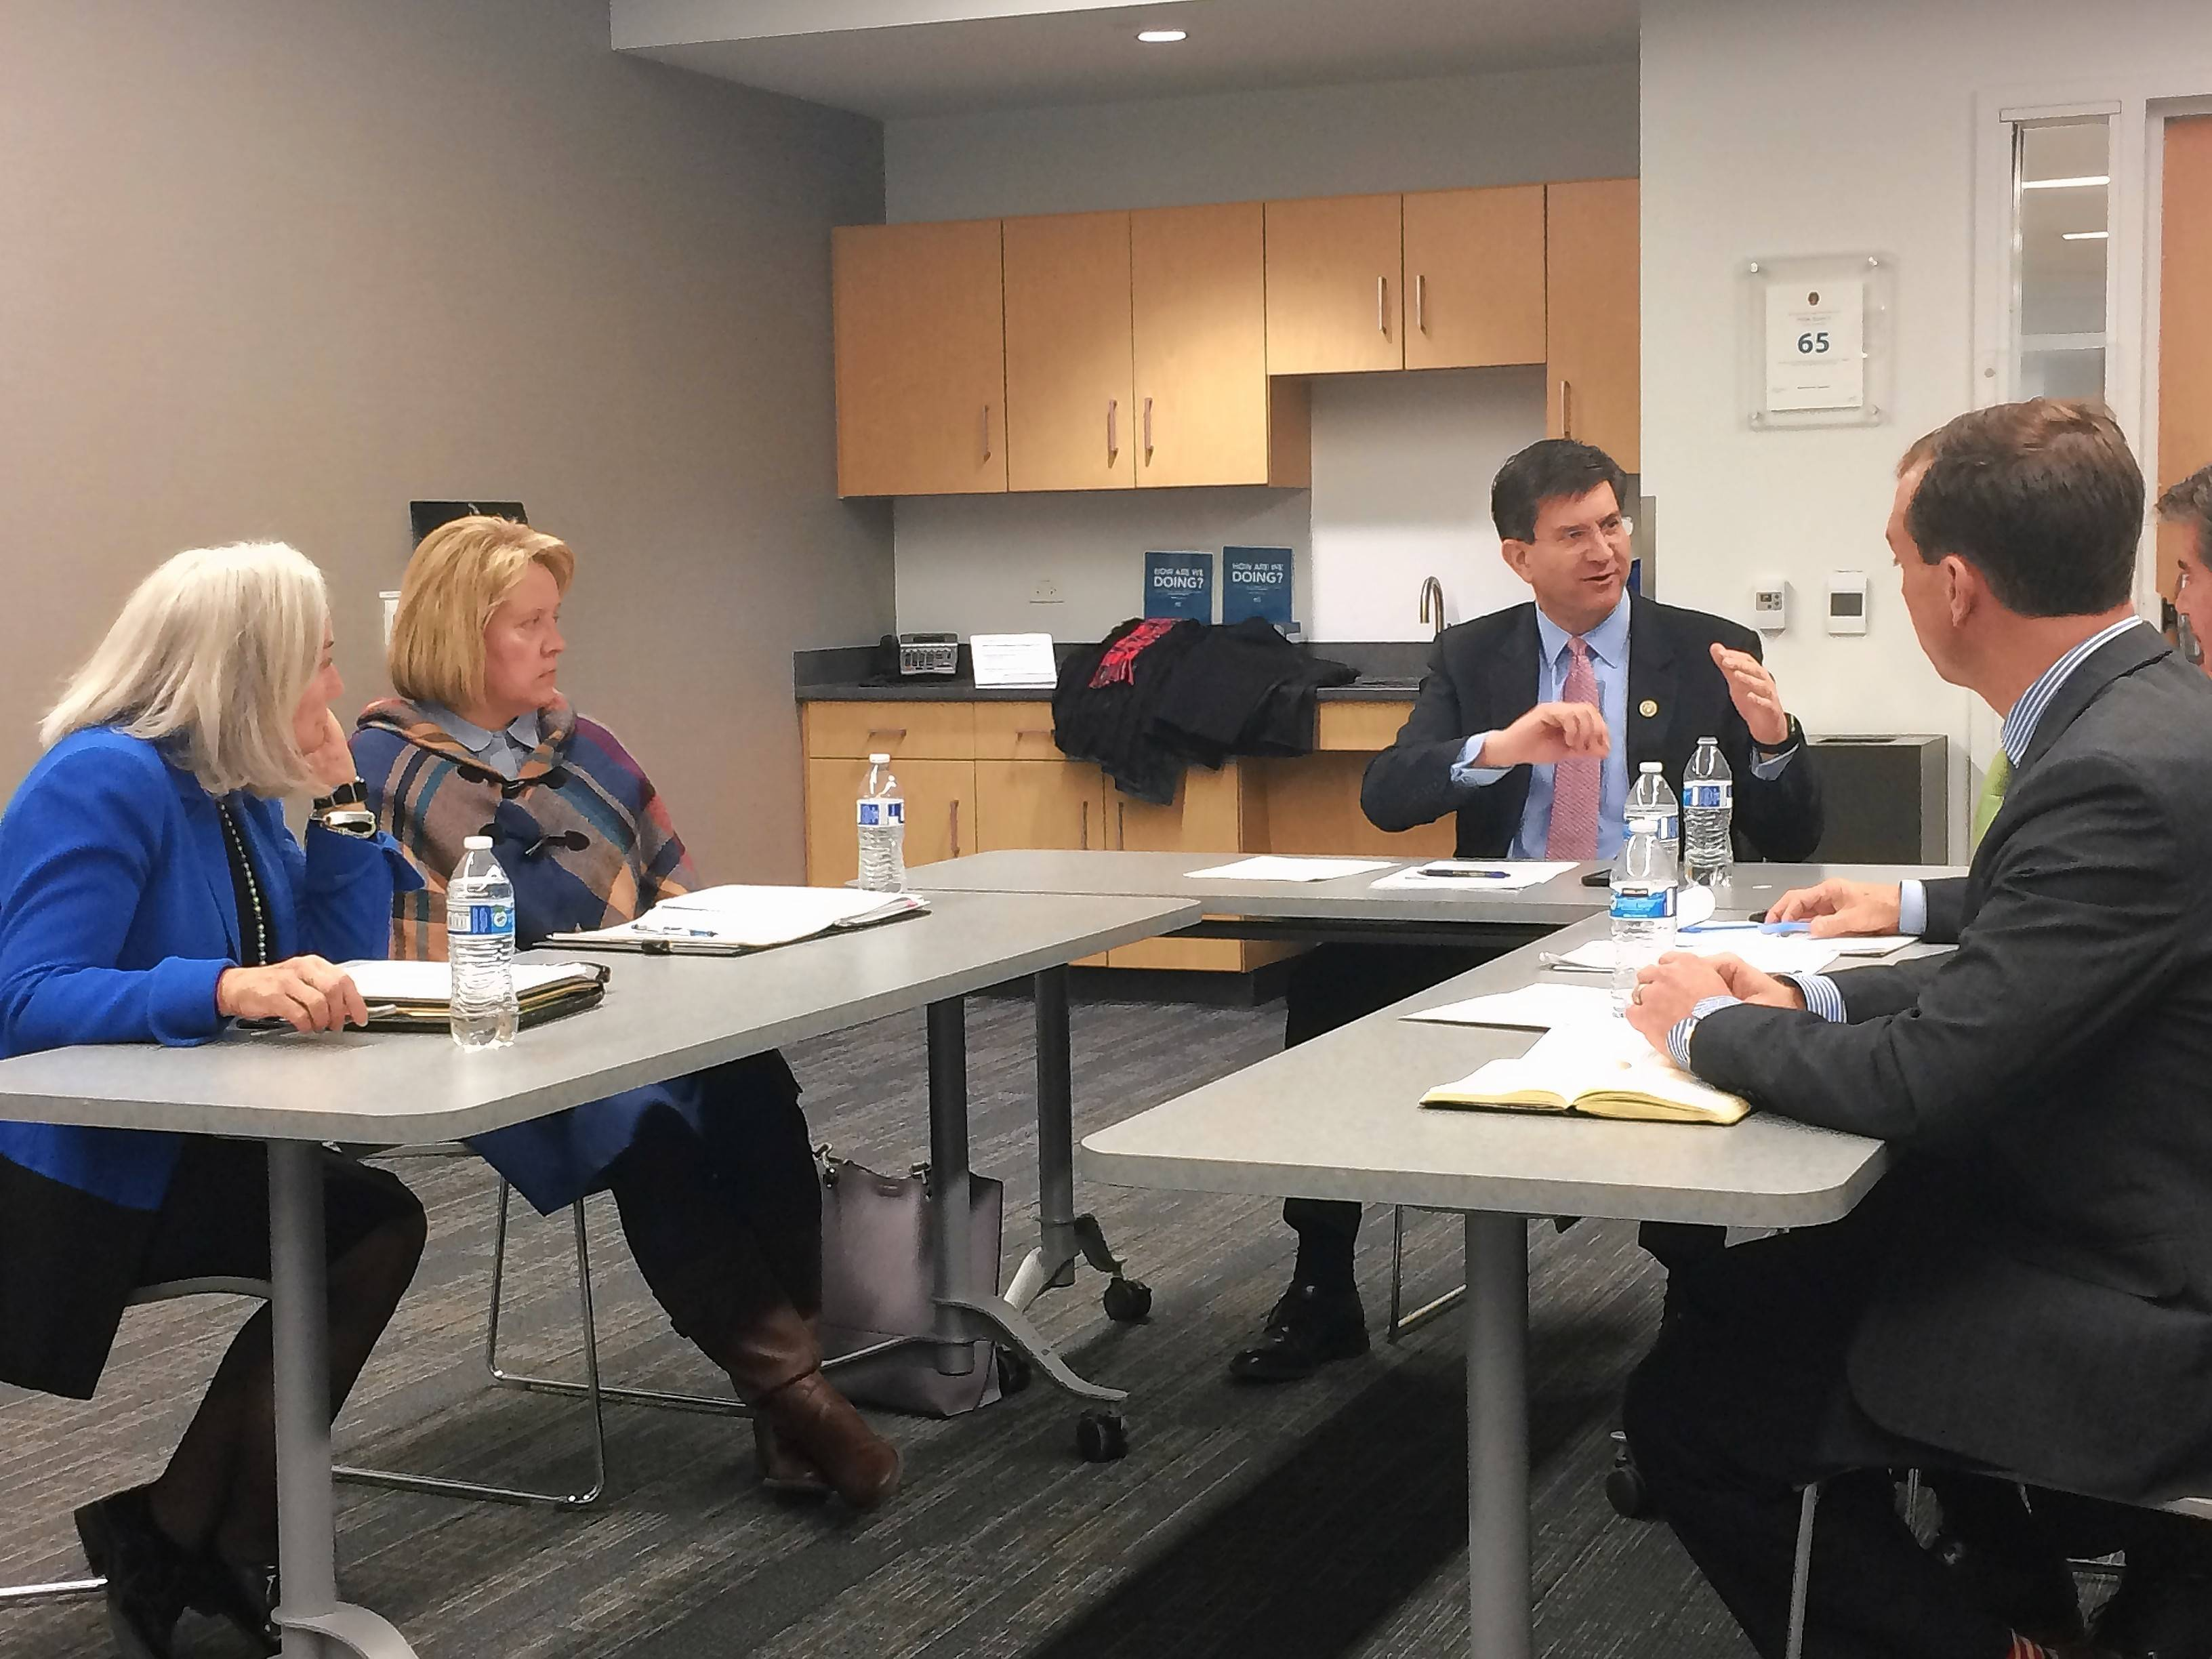 U.S. Rep. Brad Schneider, center, talks about election security during a meeting in Northbrook. Also attending were Lake County Clerk Carla Wyckoff, left, Lake County Deputy Clerk Debra Nieto, Cook County Clerk David Orr, and Cook County Elections Director Noah Praetz.